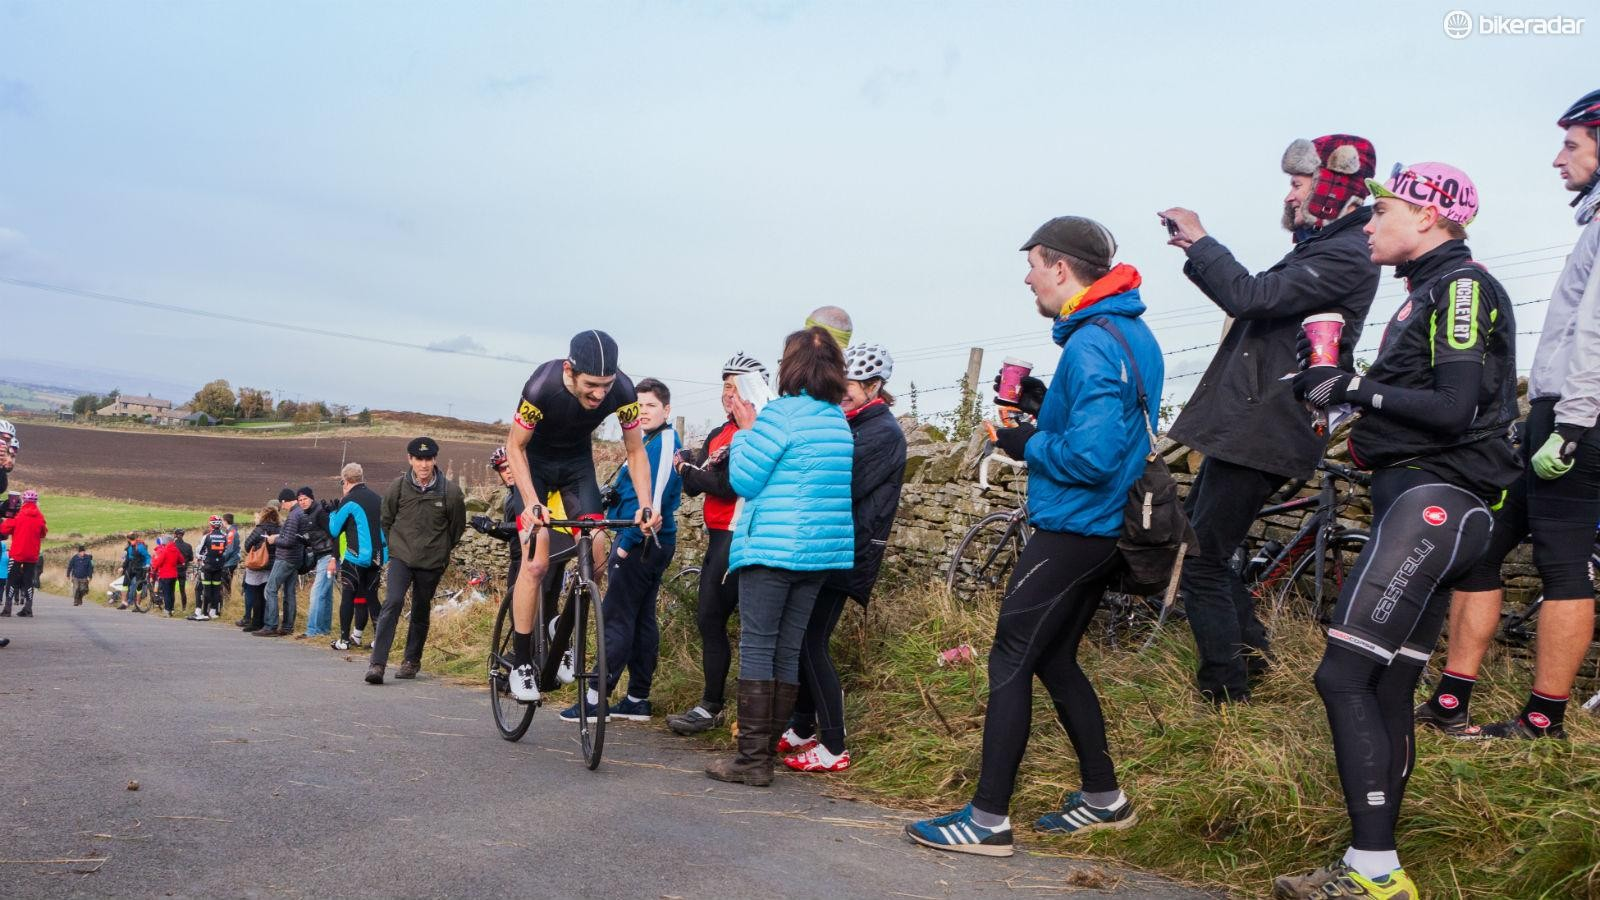 If you're a racer, then you'll know it's often on the hills where a race is won or lost